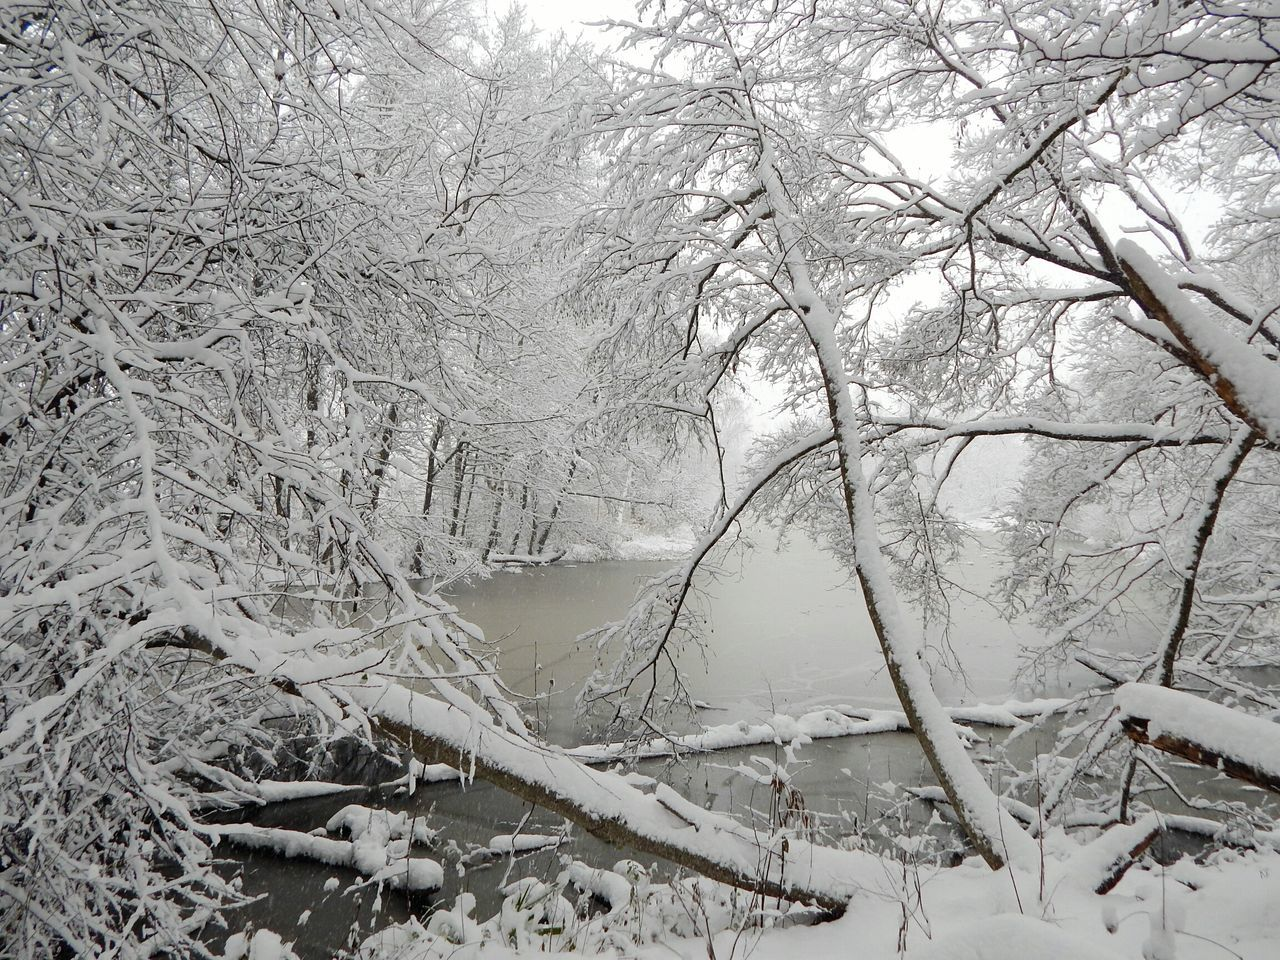 Tree Nature No People Growth Beauty In Nature Outdoors Branch Day Backgrounds Close-up Sky Non-urban Scene Snow Riga Latvia Forest Winter Beauty In Nature Nature Ice Lake